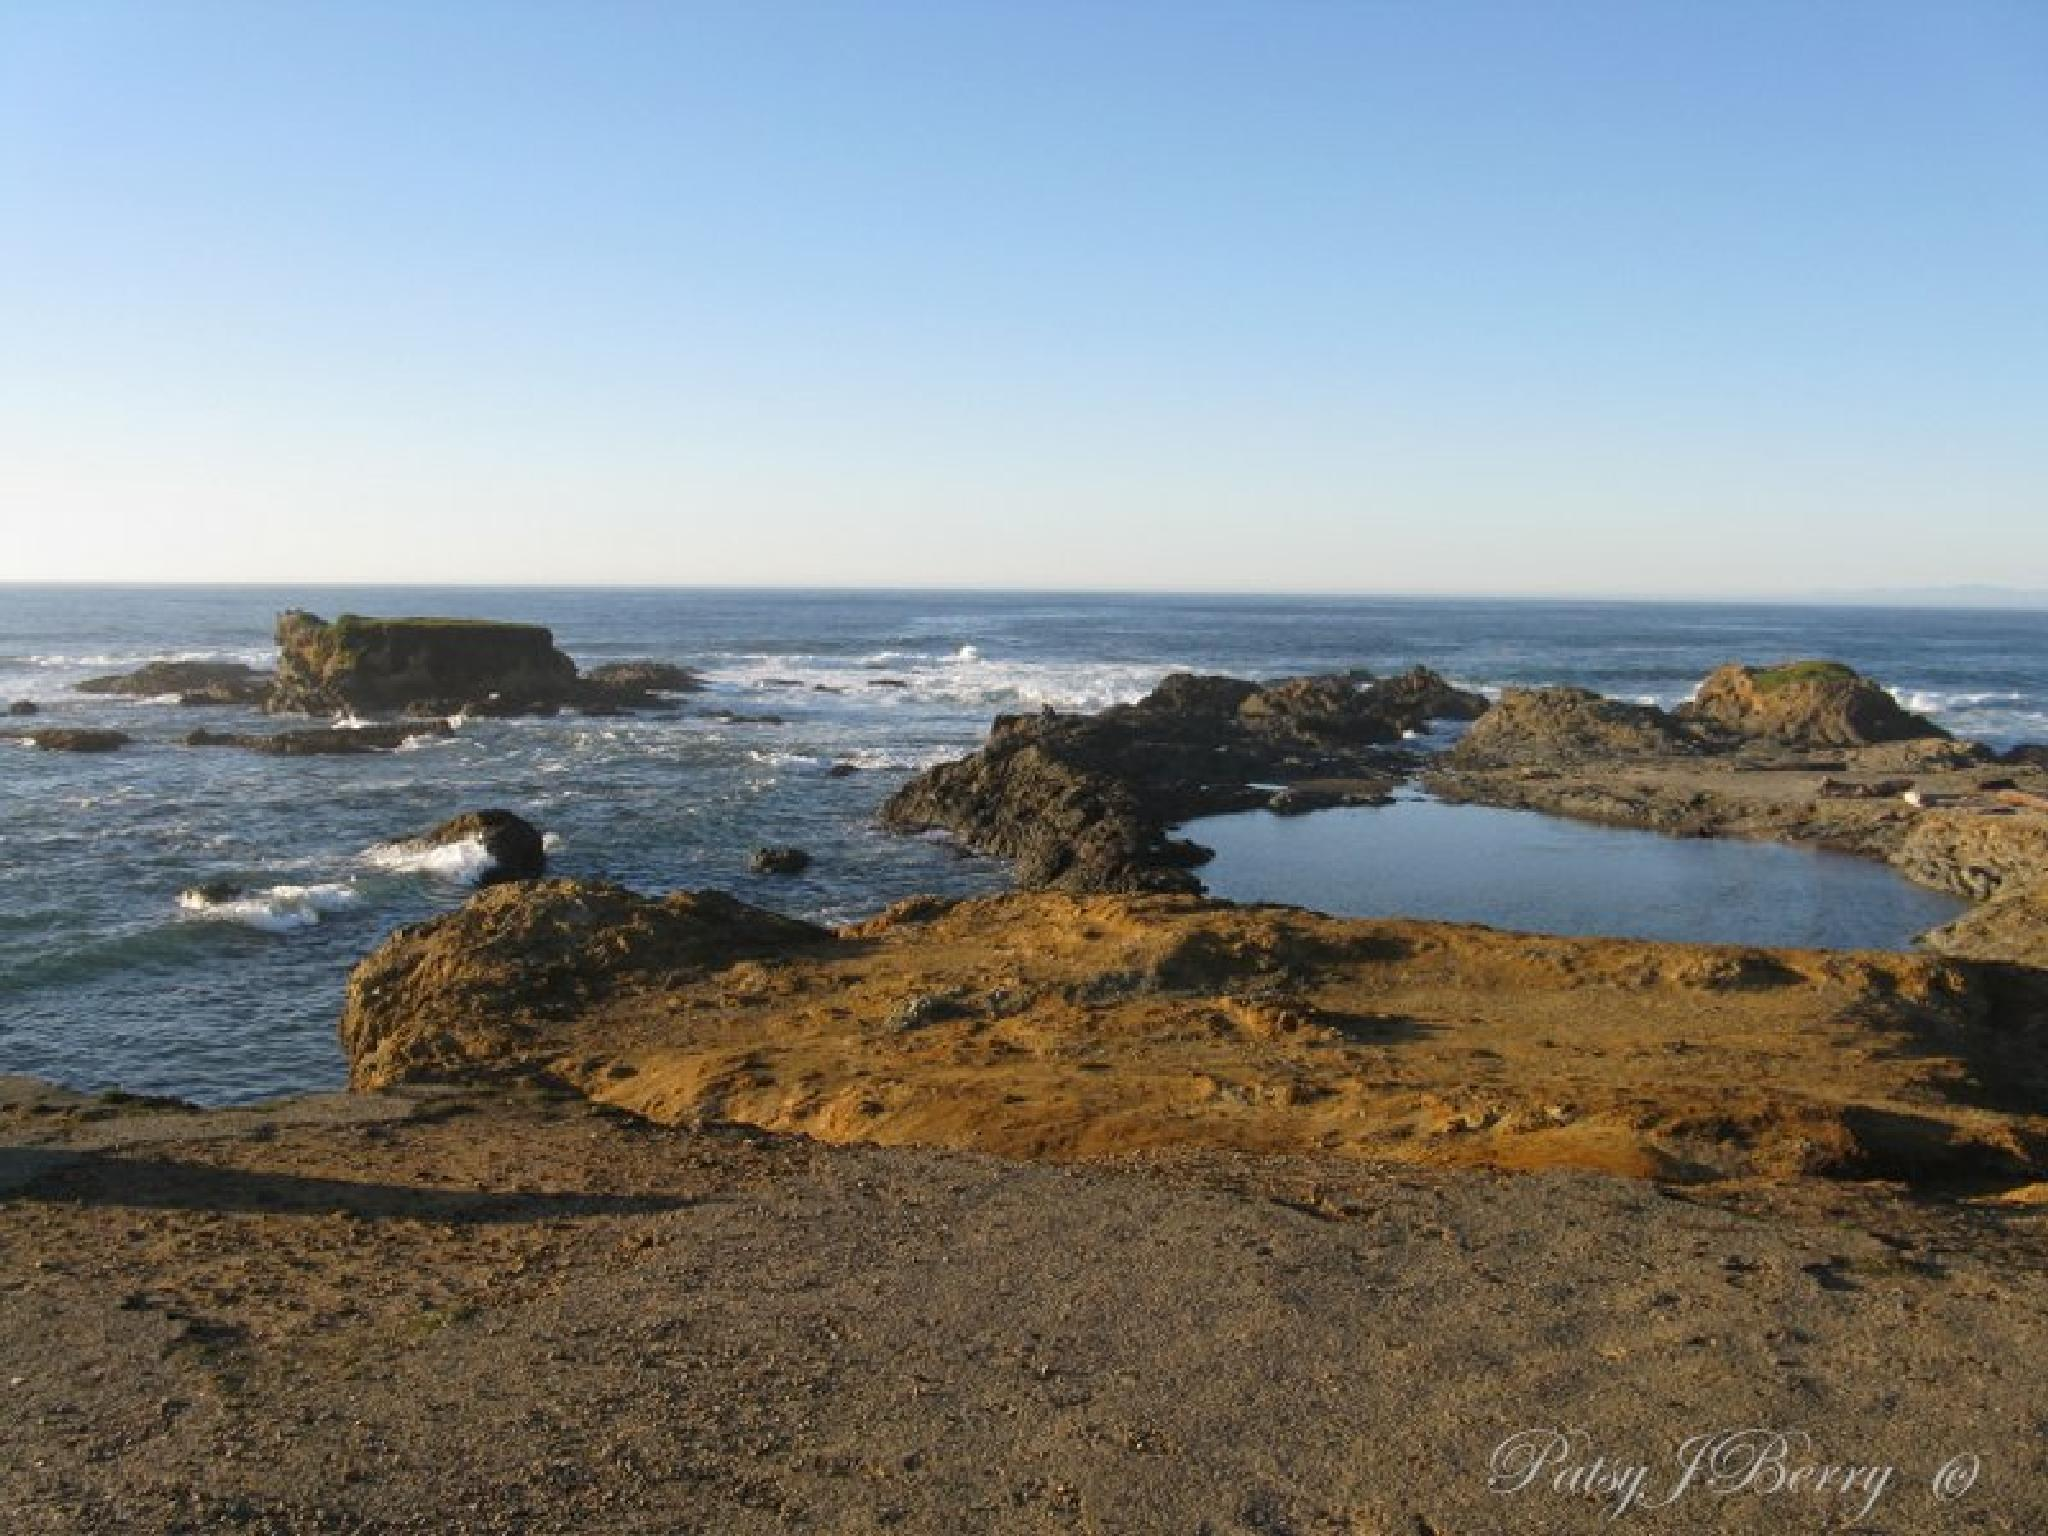 The Pacific Ocean by Kat